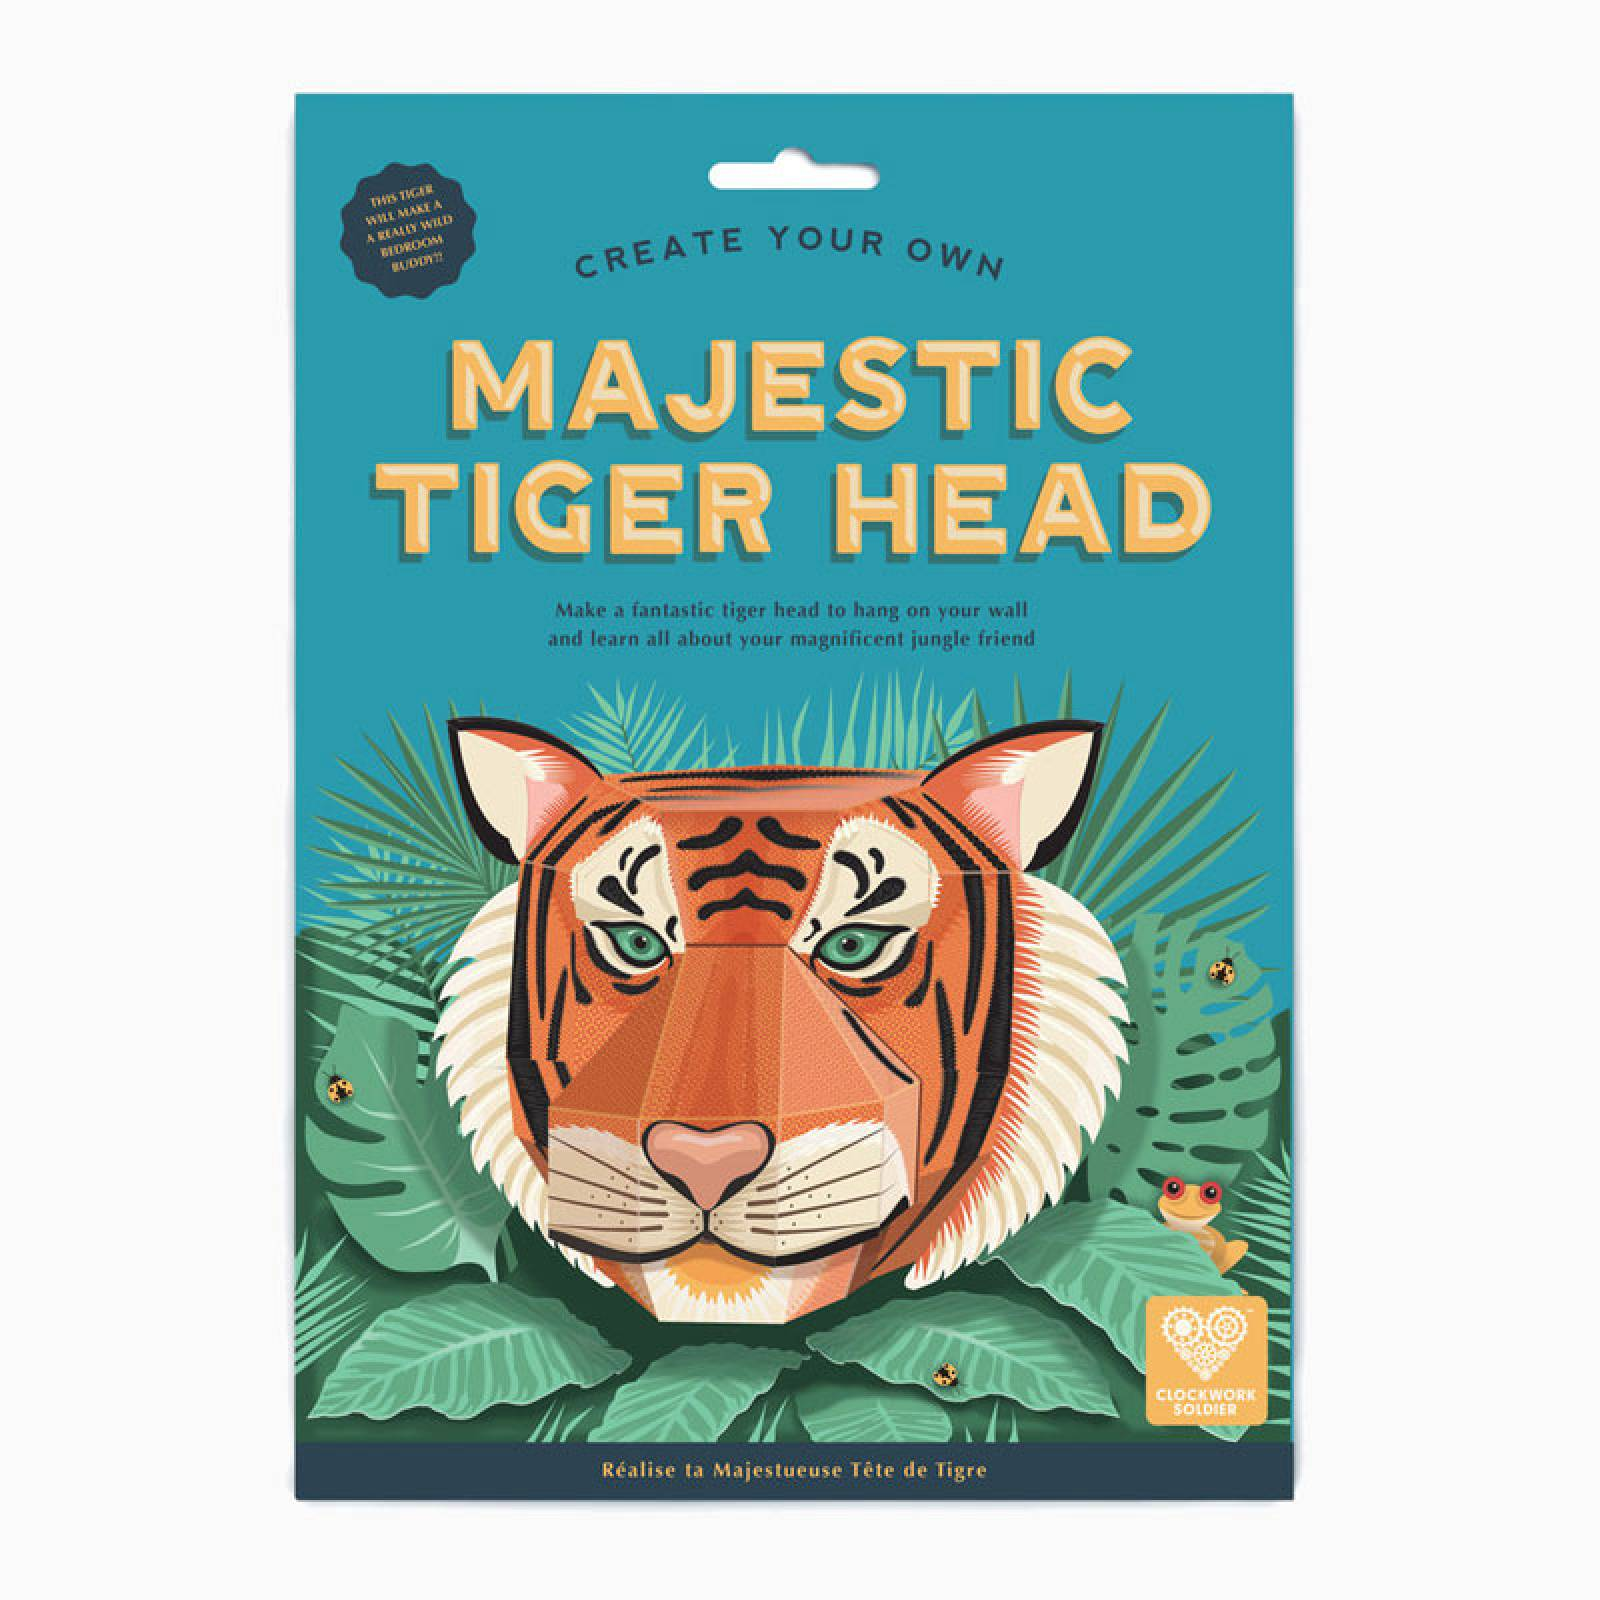 Create Your Own Majestic Tiger Head 7+ thumbnails